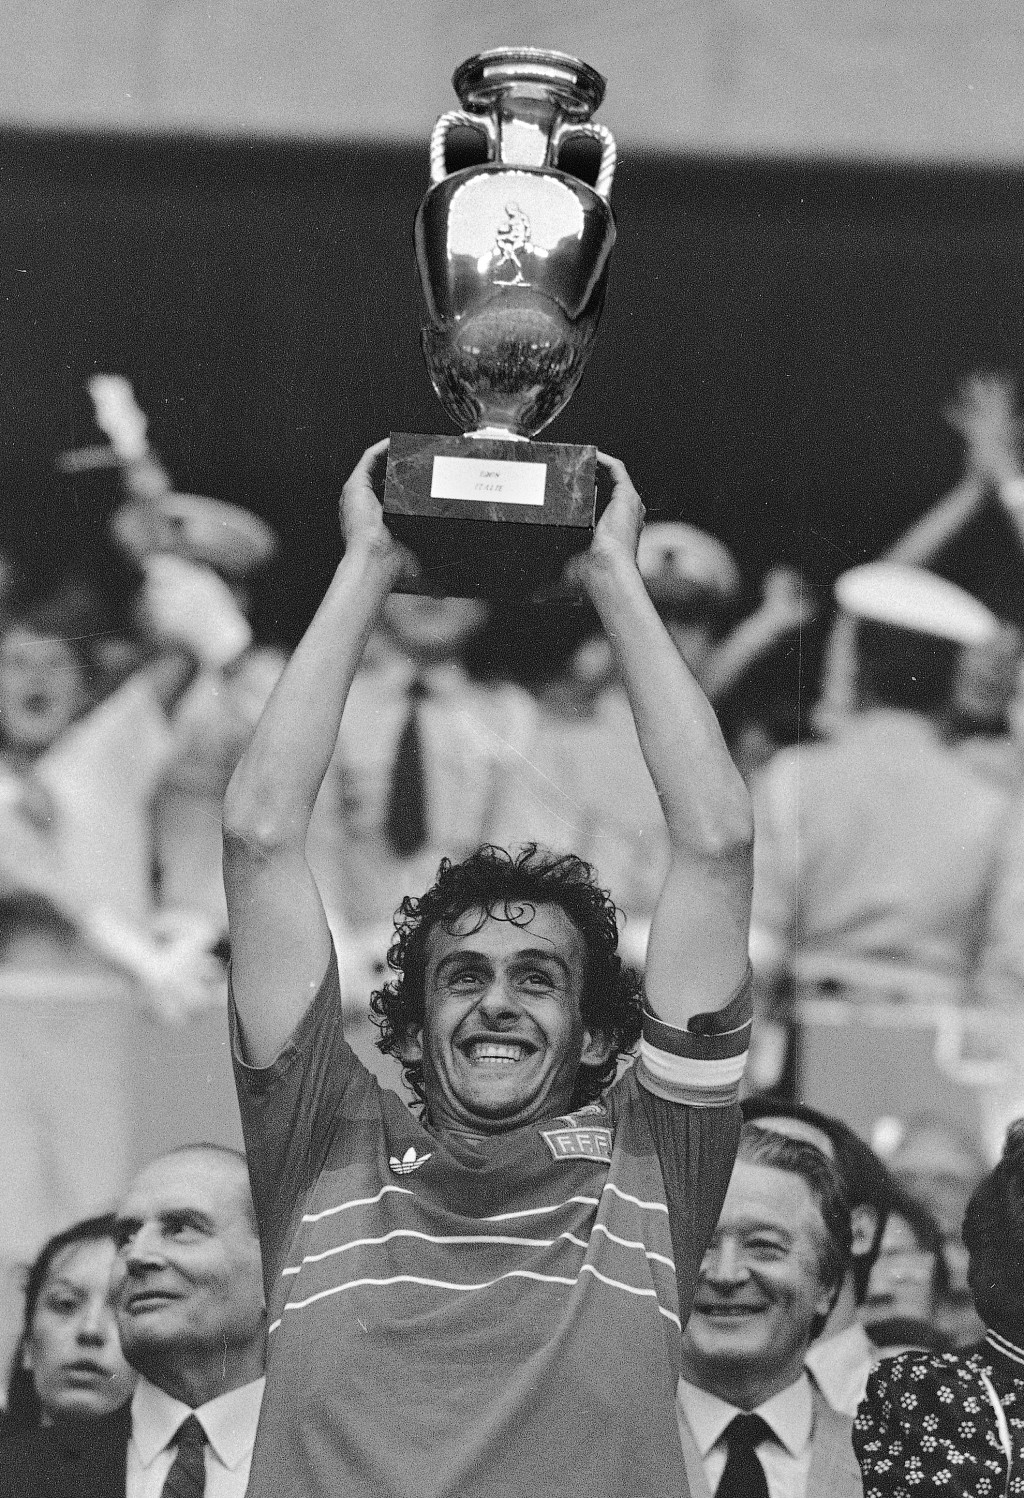 FILE - In this file b/w photo dated June 27, 1984 French team captain Michel Platini holds high the winner's cup after France beat Spain, 2-0, in the